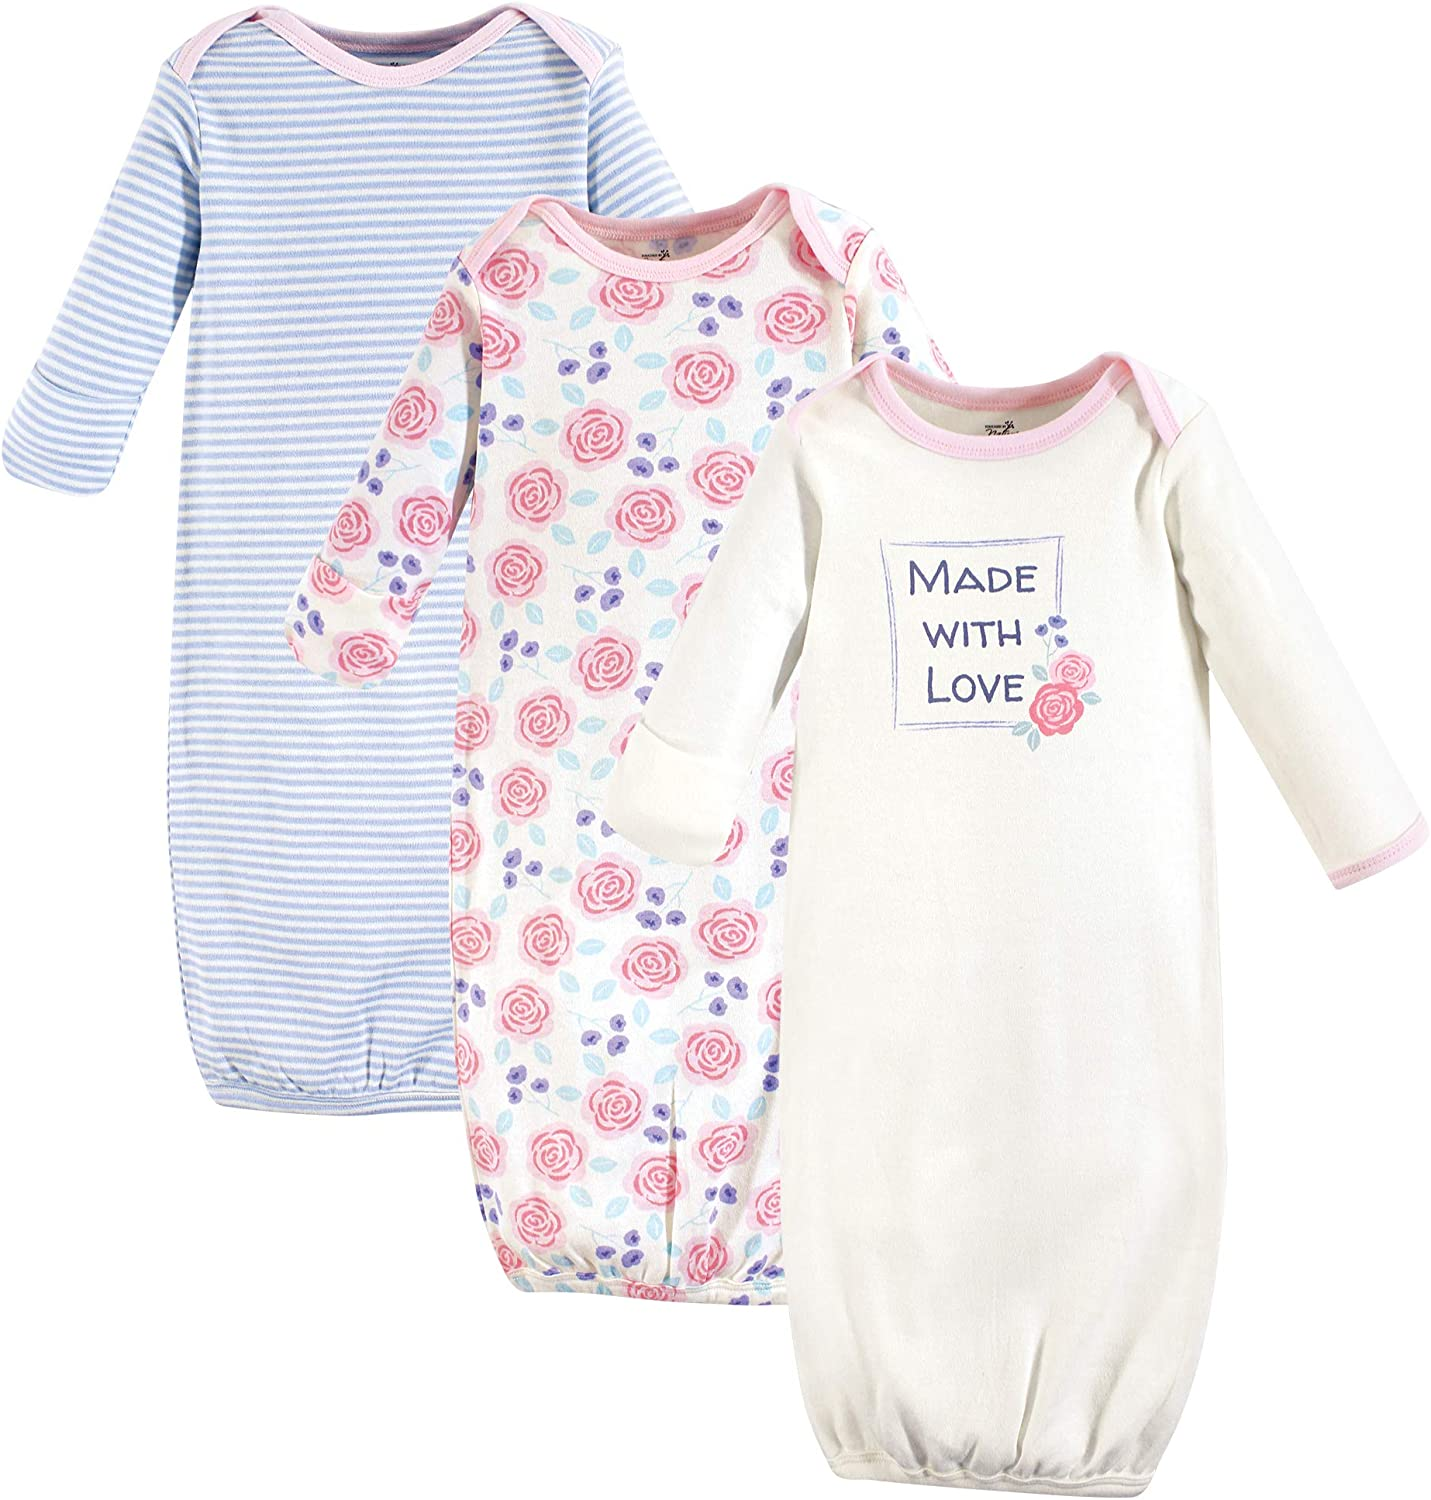 Pink Rose Touched by Nature Unisex Baby Organic Cotton Gowns 0-6 Months